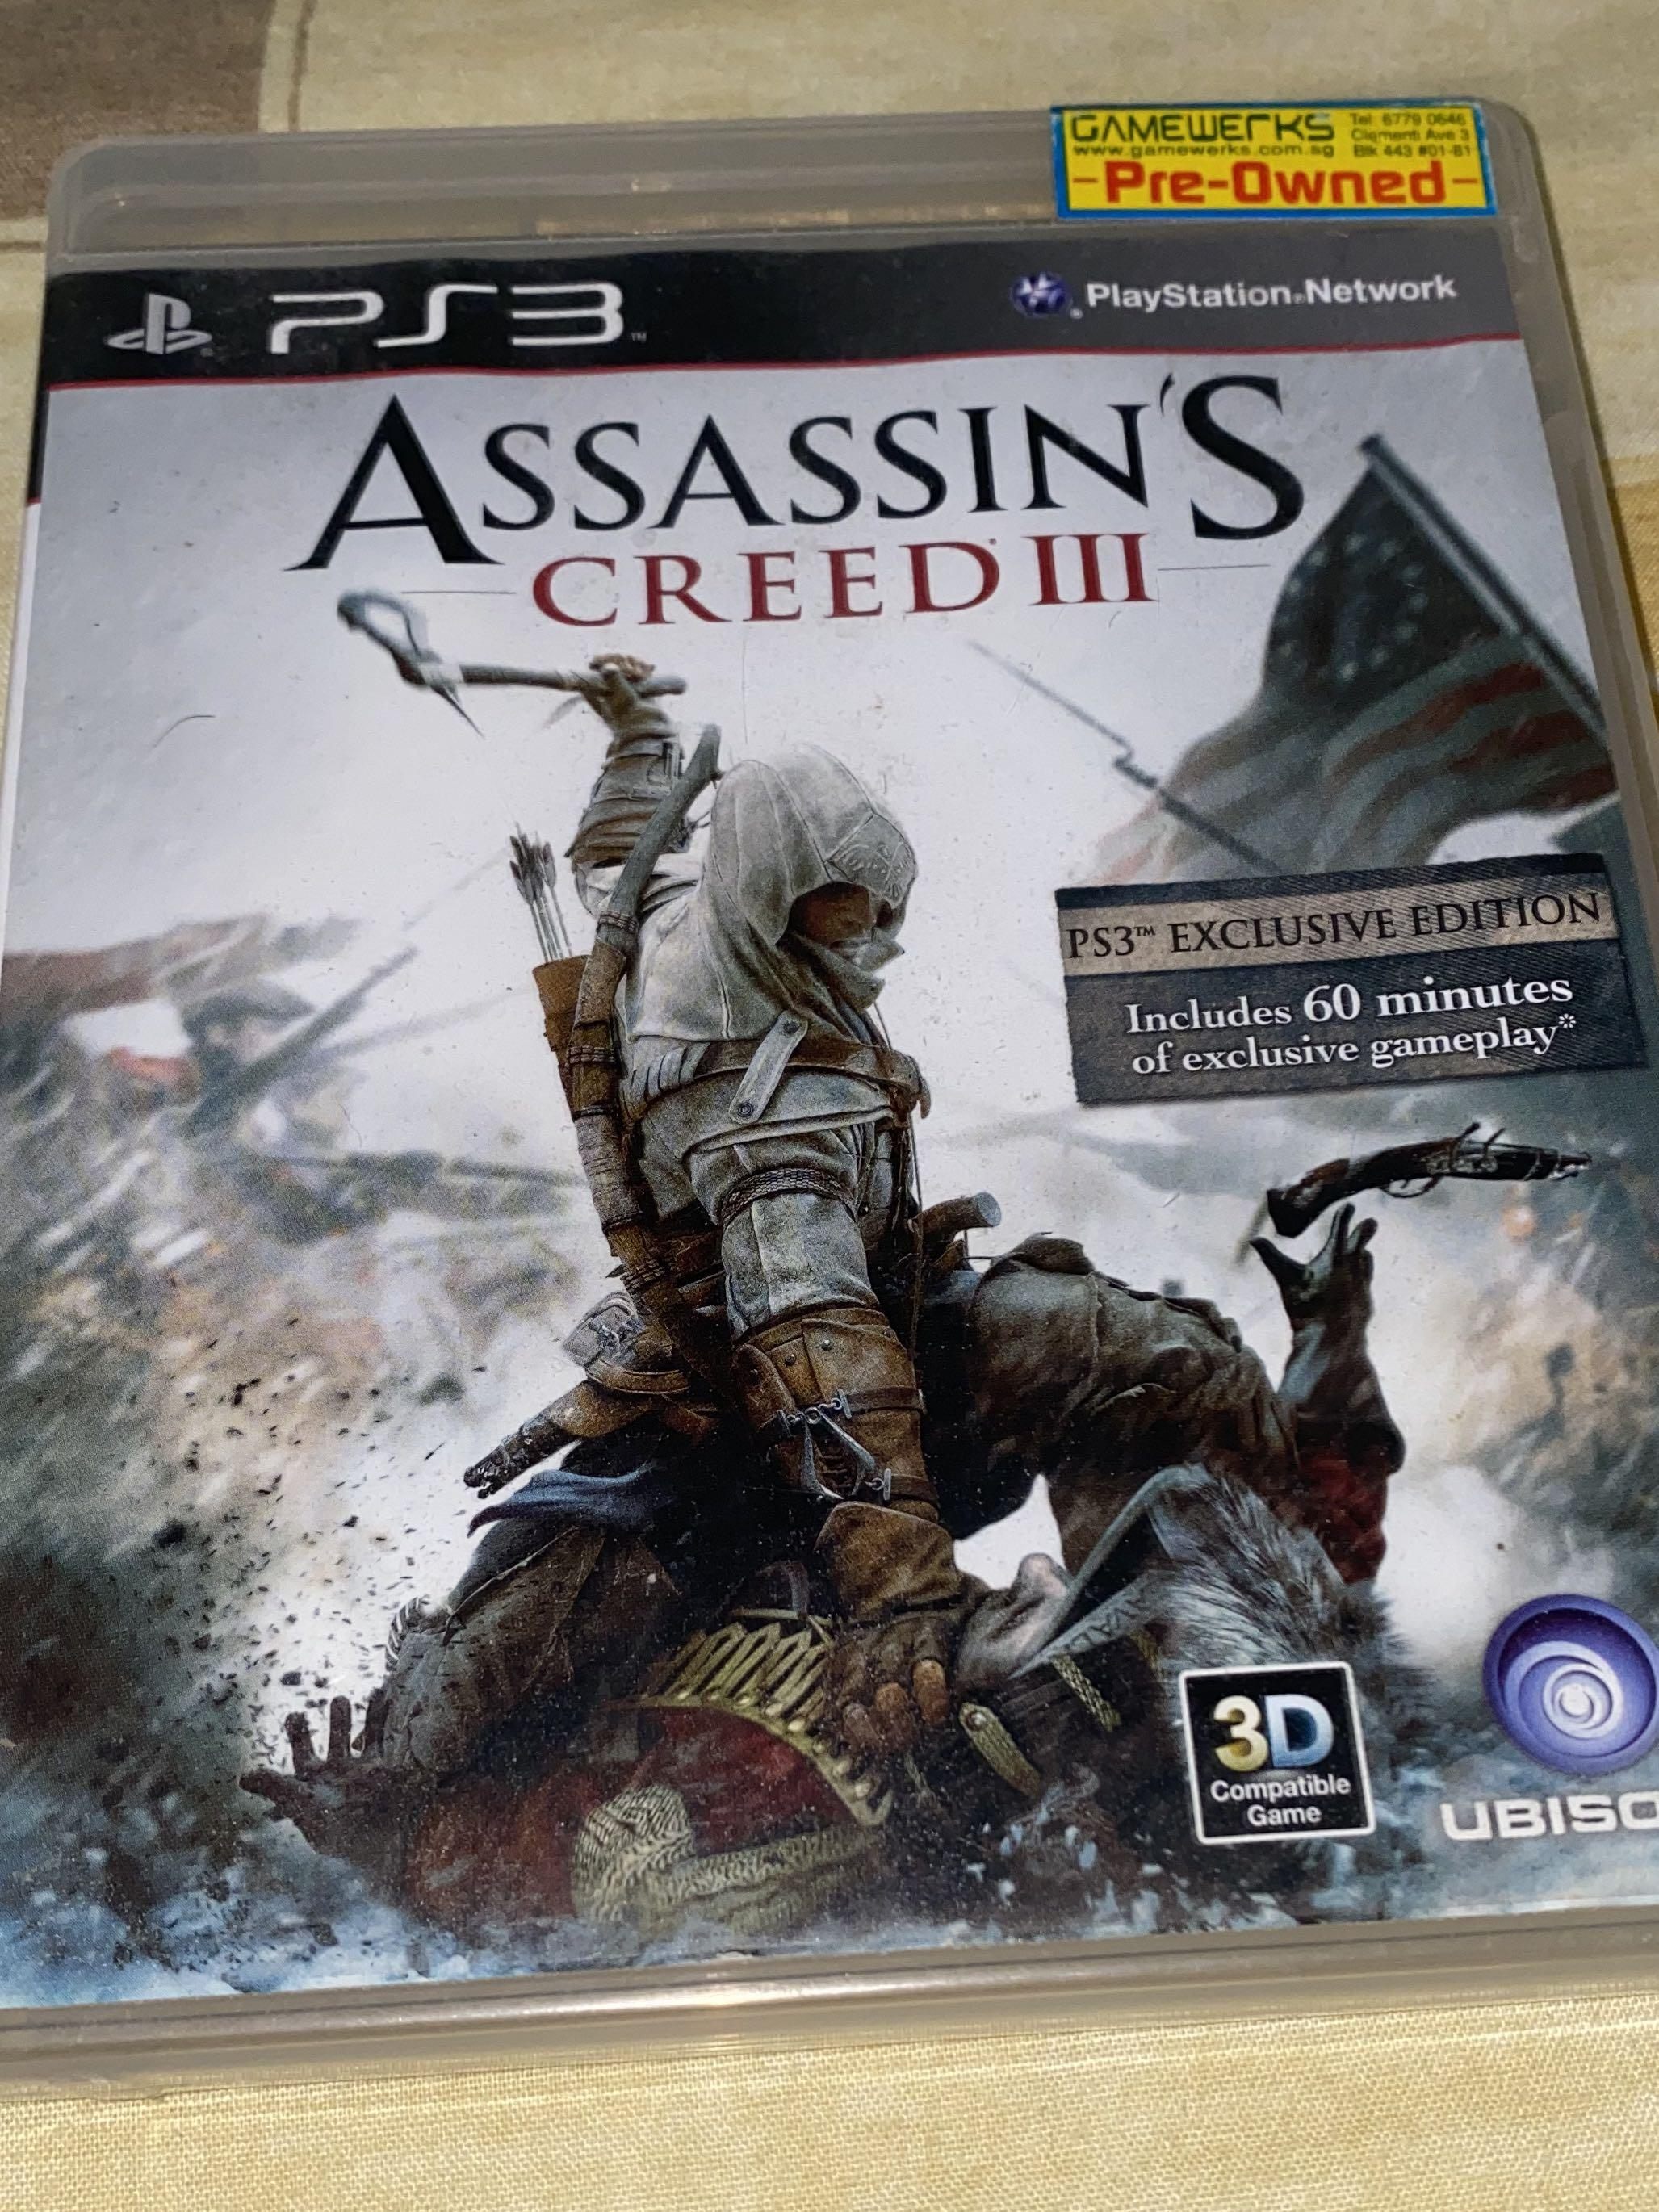 Ps3 Assassin S Creed Iii Toys Games Video Gaming Video